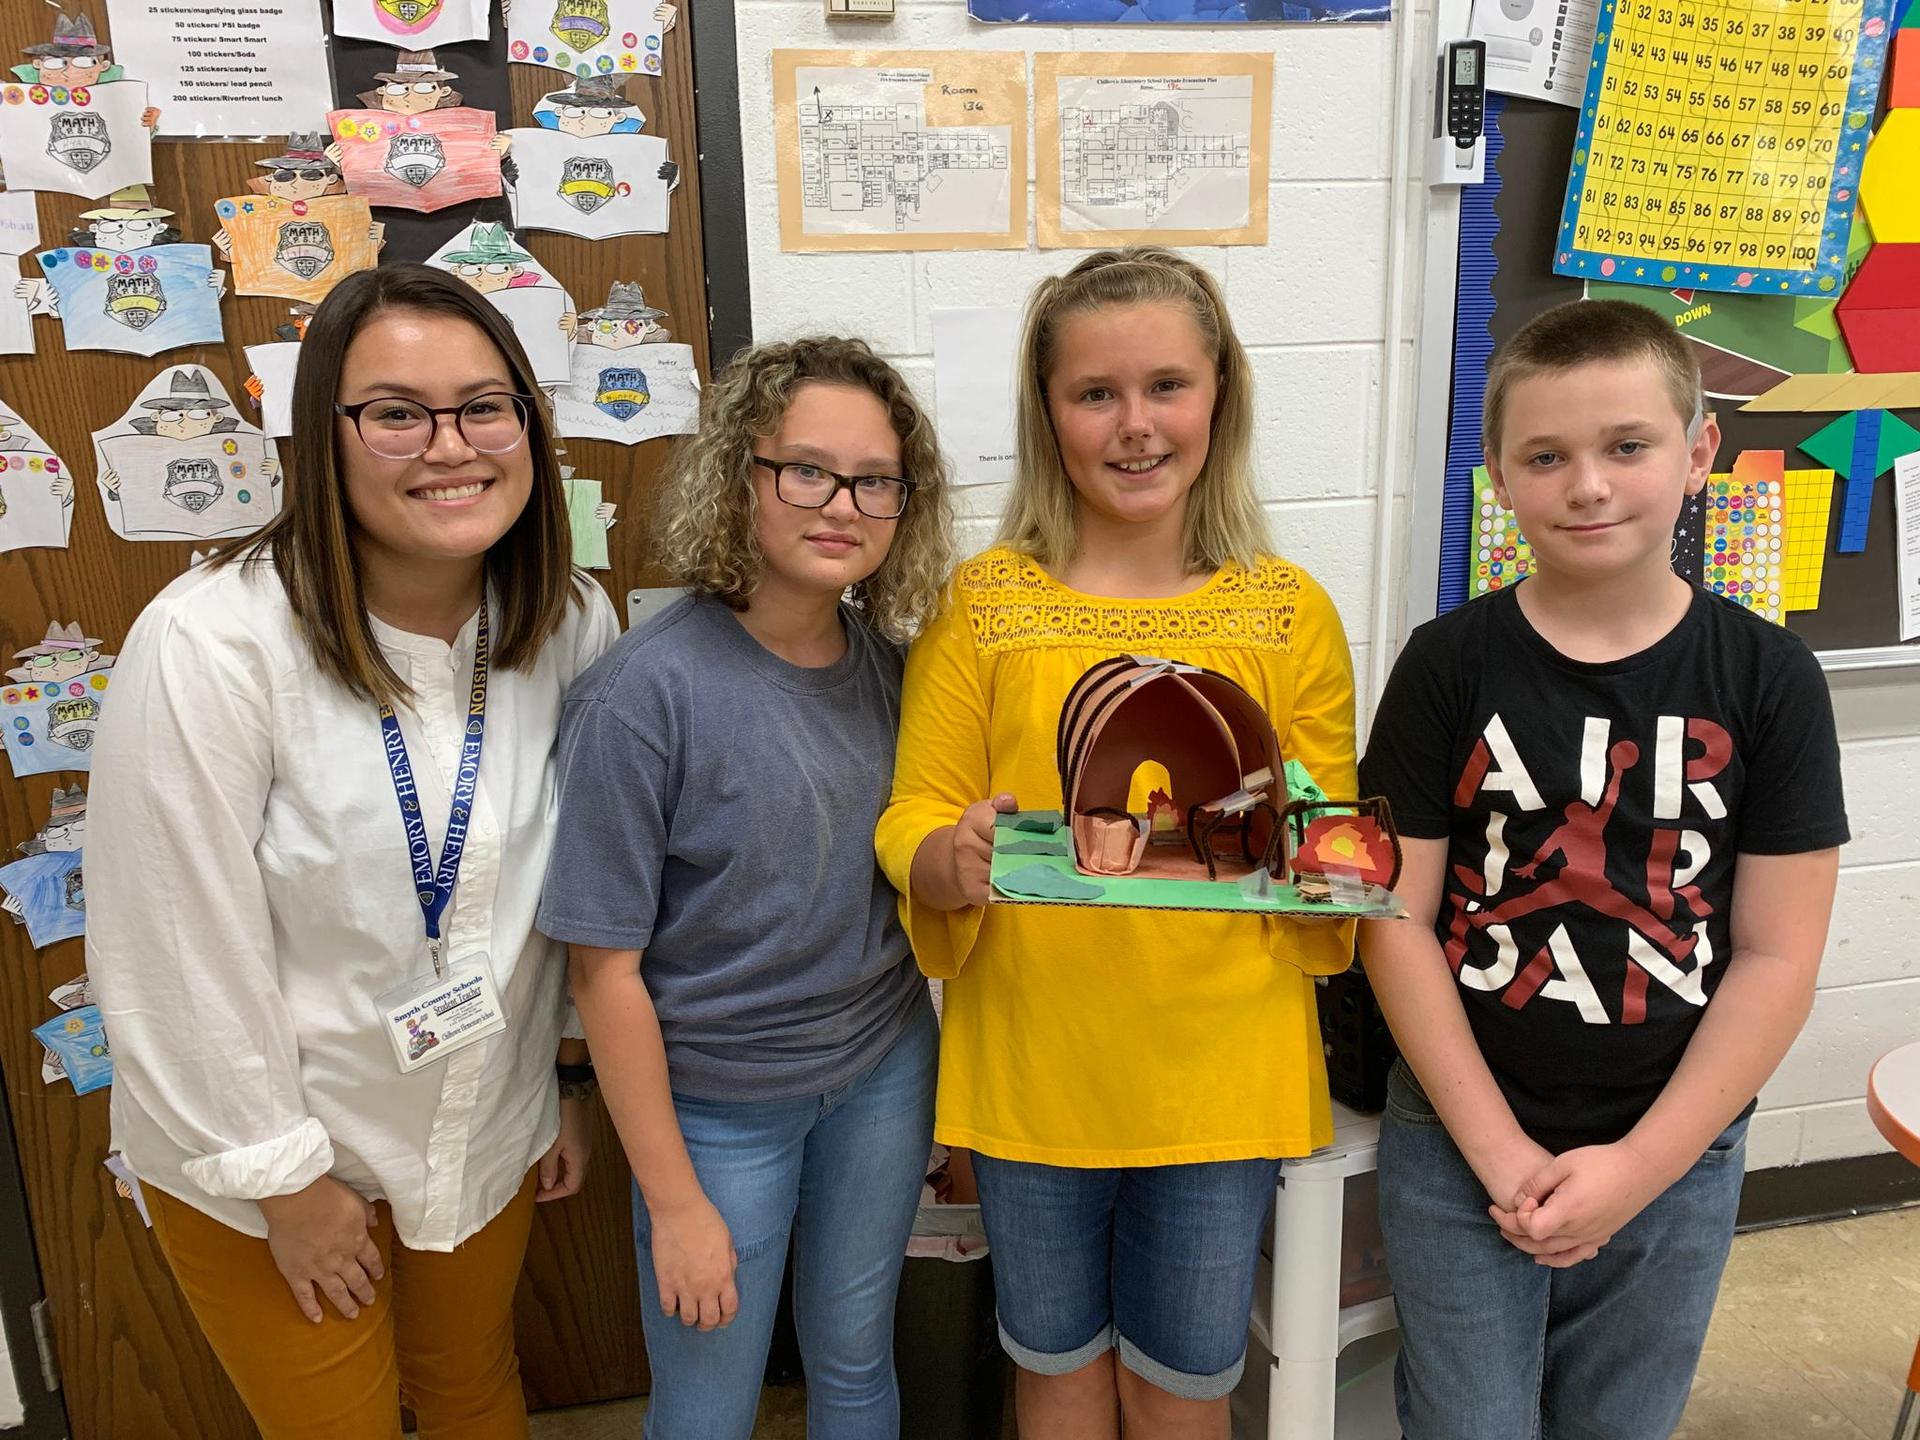 Pictured here, along with a group of students showing their completed longhouse, isstudent-teacher Miss Whitley,